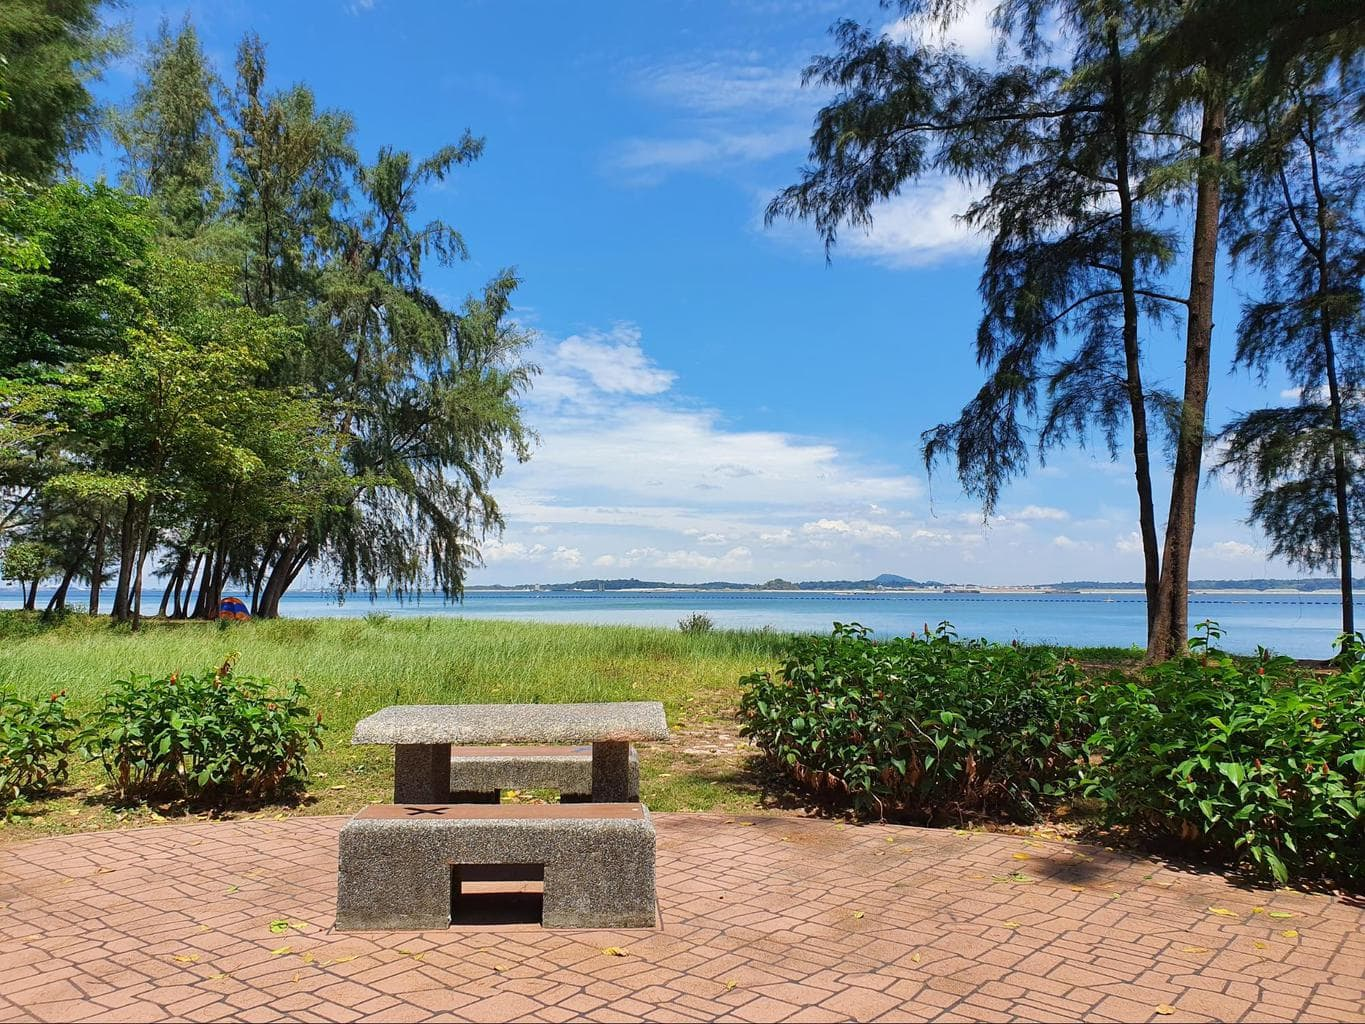 Hiking trails in Singapore to Changi Beach Park